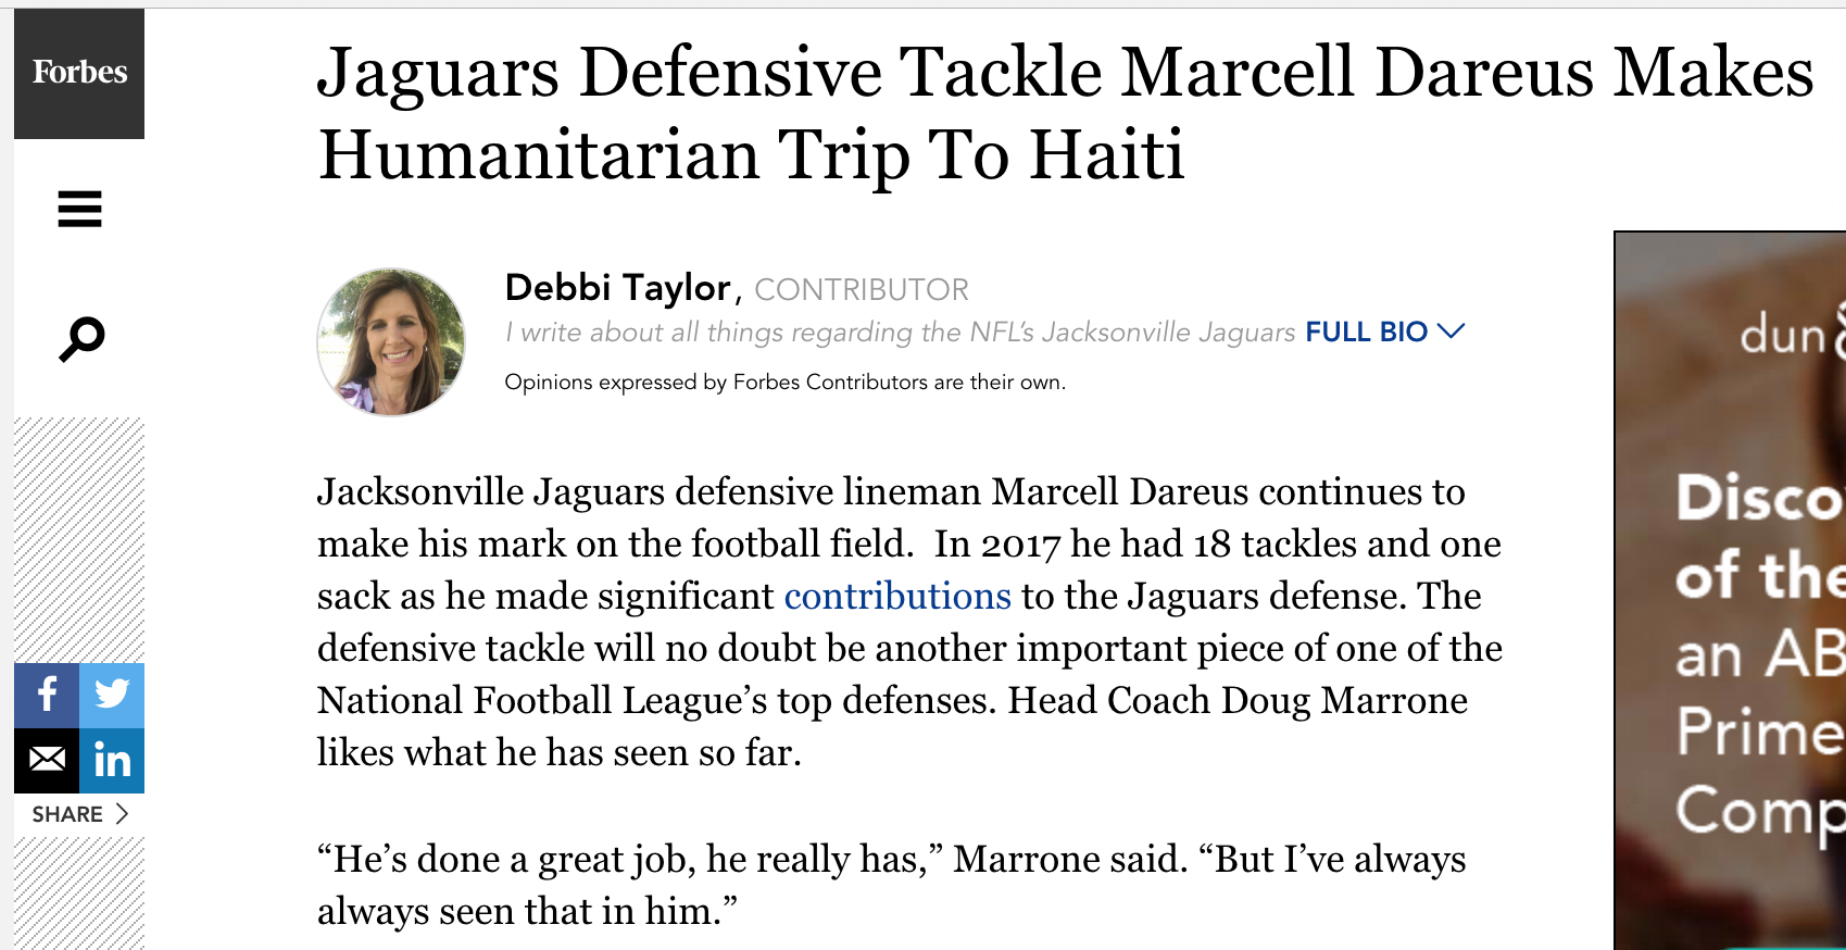 Marcell dareus is featured in forbes following his charitable trip to haiti.